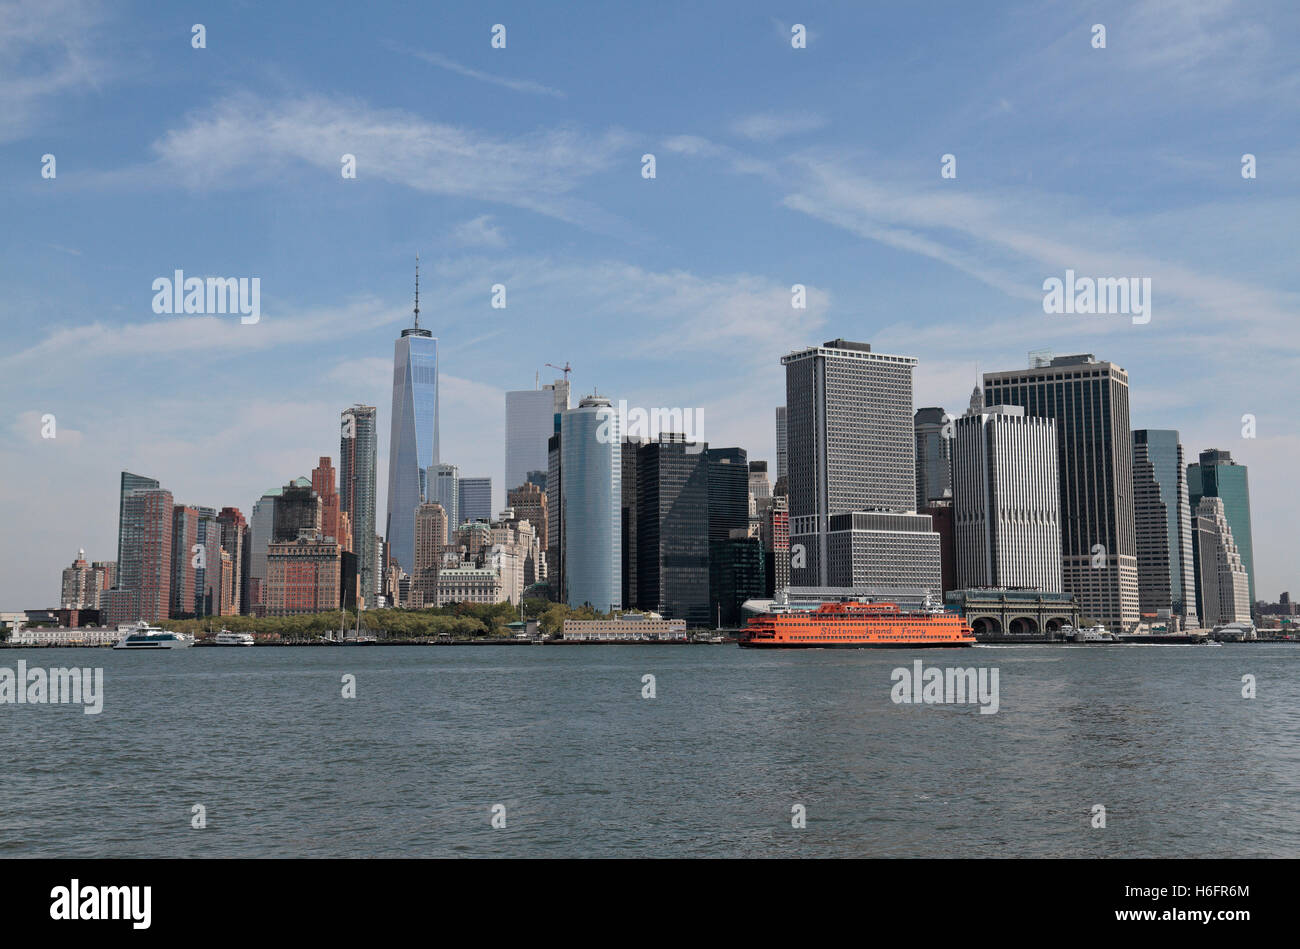 a staten island ferry in front of the lower manhattan skyline. view